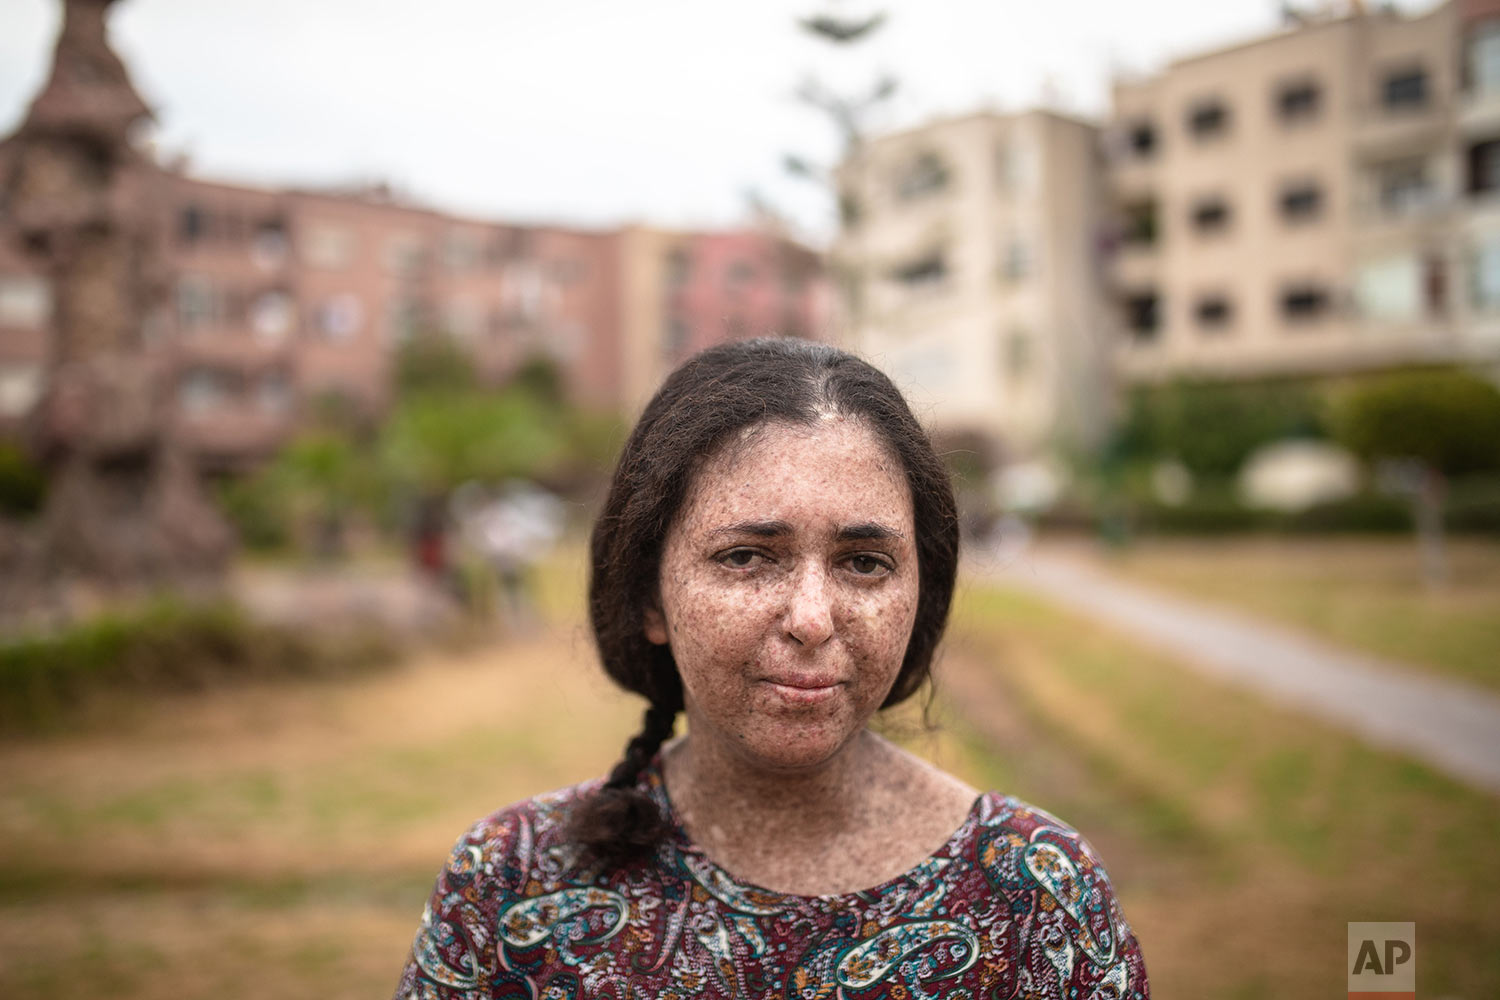 Fatimazehra El Ghazaoui, 27, a woman affected by a rare disorder called xeroderma pigmentosum, or XP, poses for a portrait inside her home in Mohammedia, near Casablanca, Morocco, July 16, 2019. (AP Photo/Mosa'ab Elshamy)